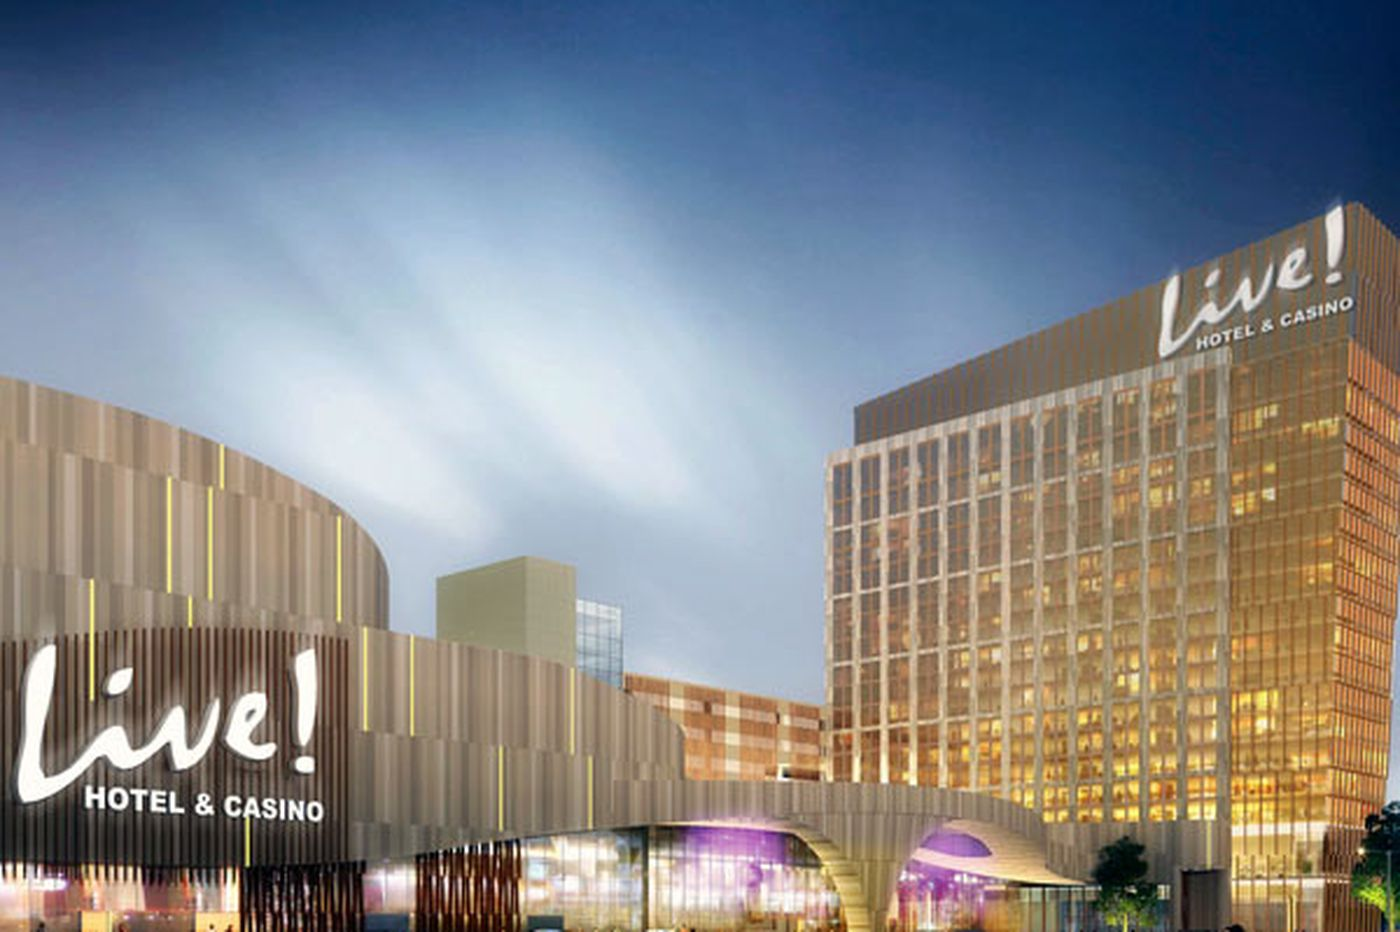 Planning official: Philly casino proposal short of space